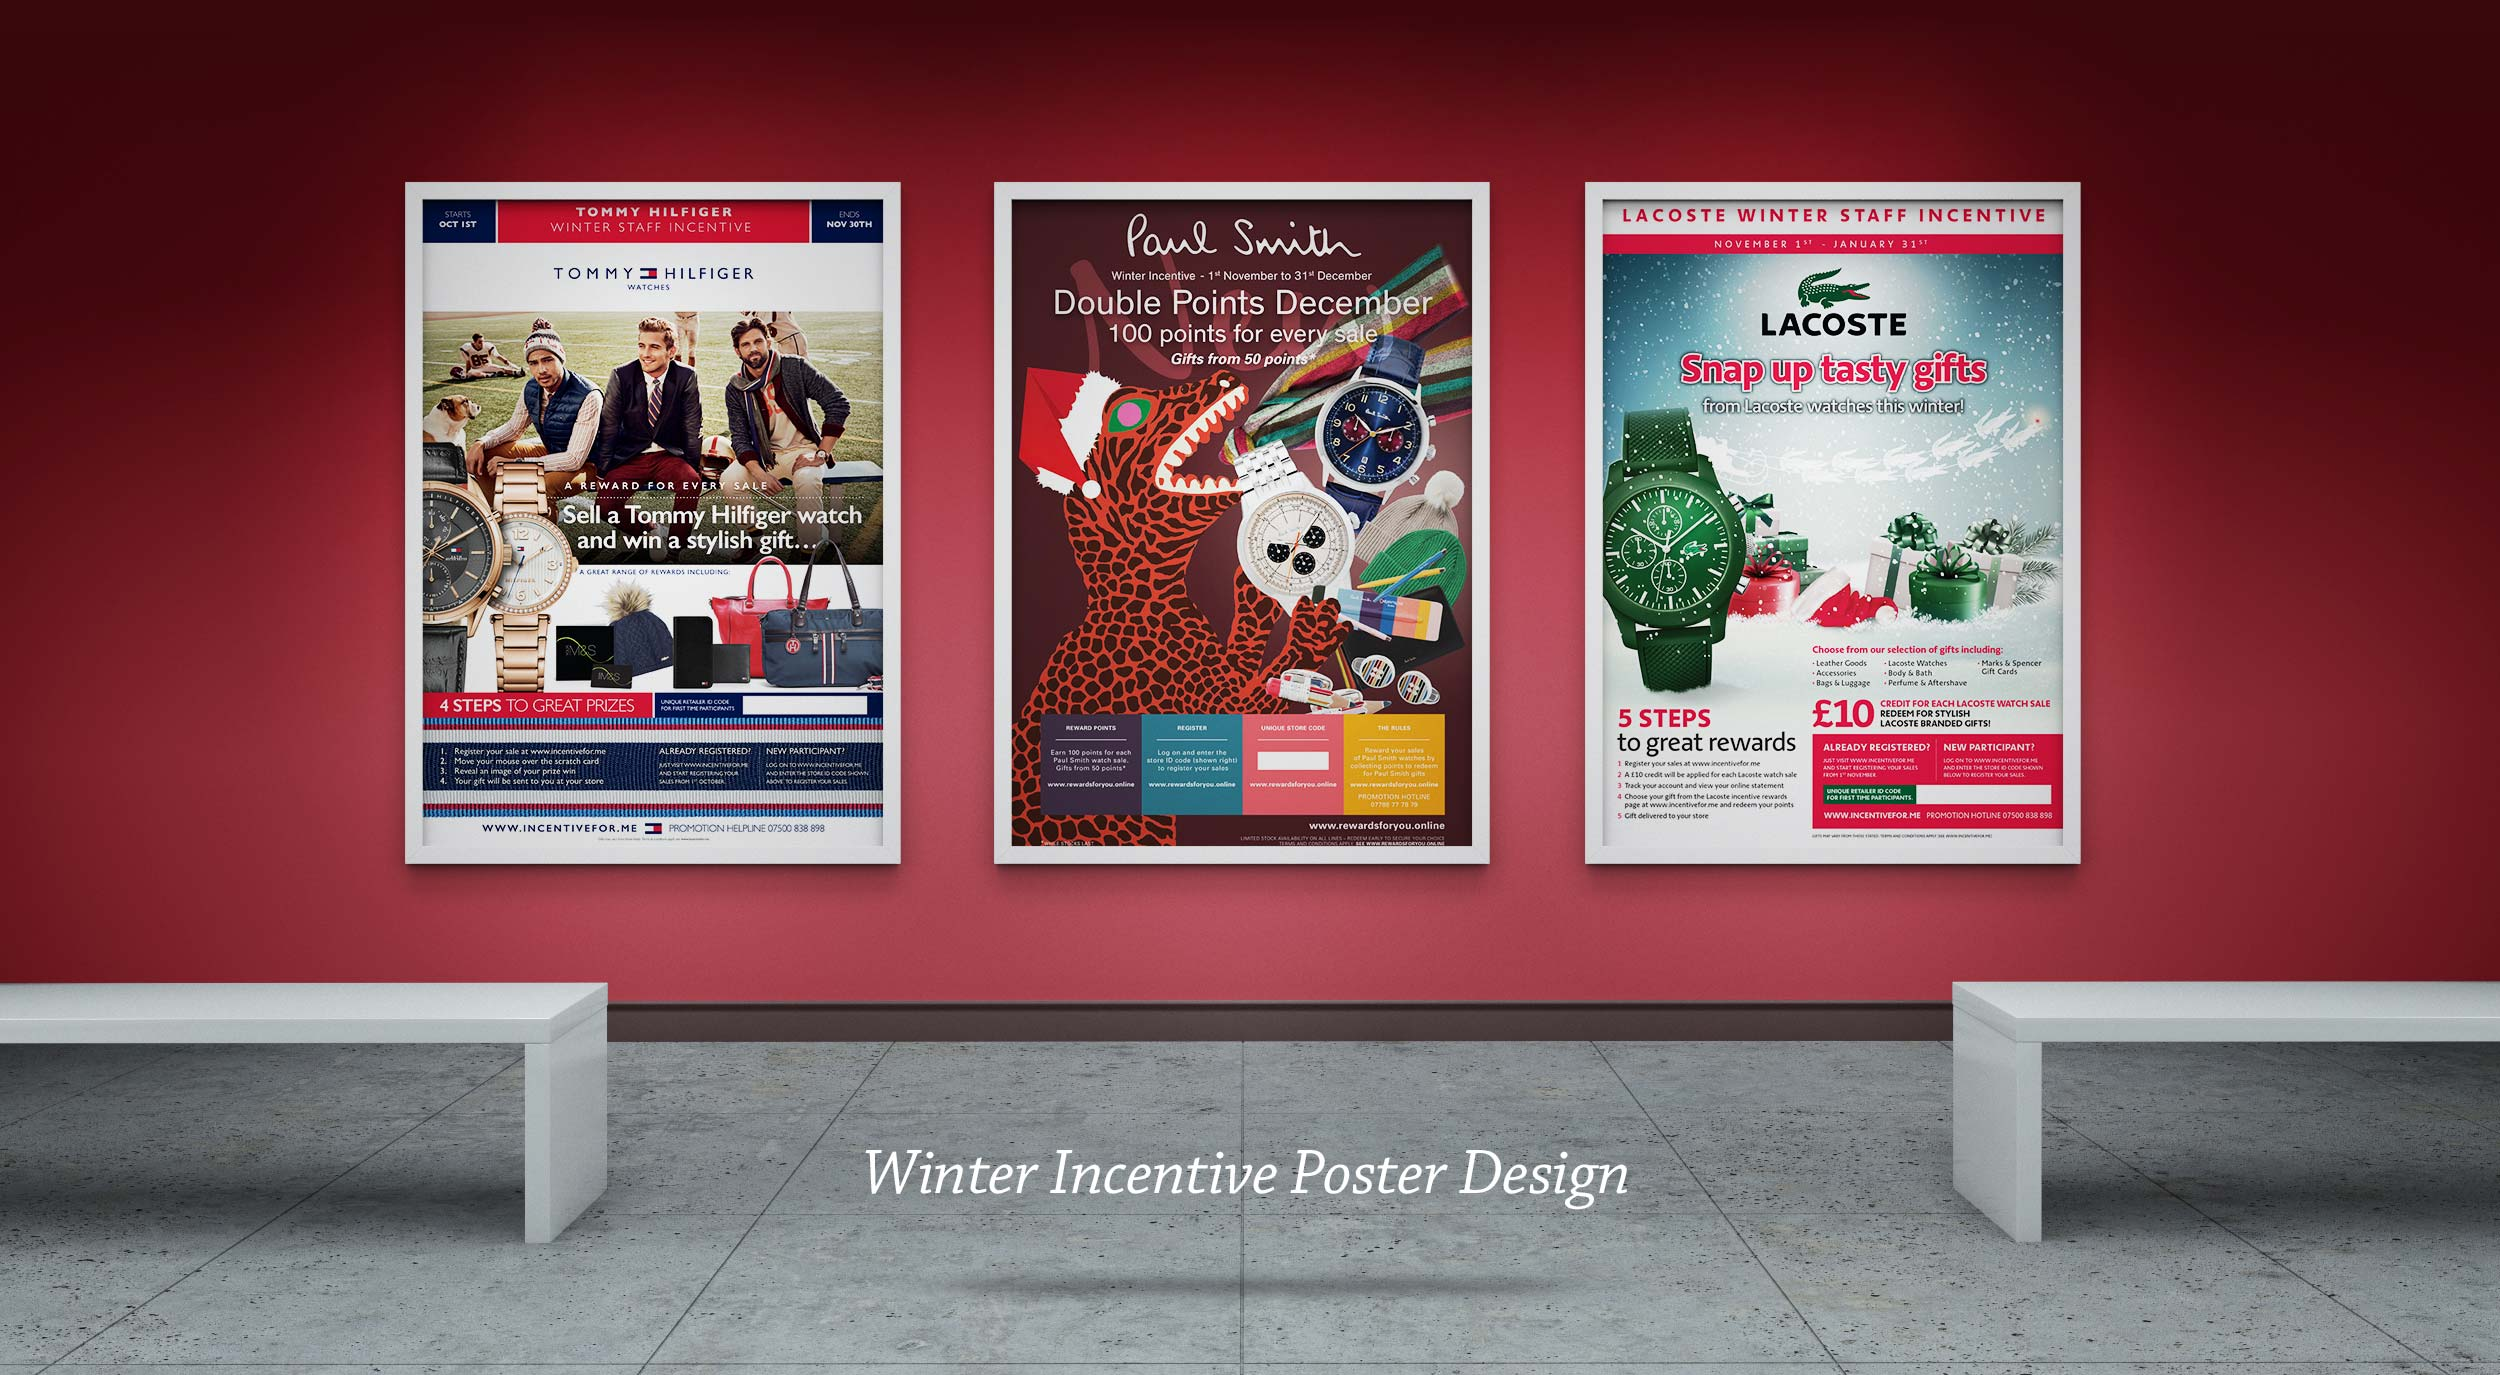 poster-design-winter-incentive